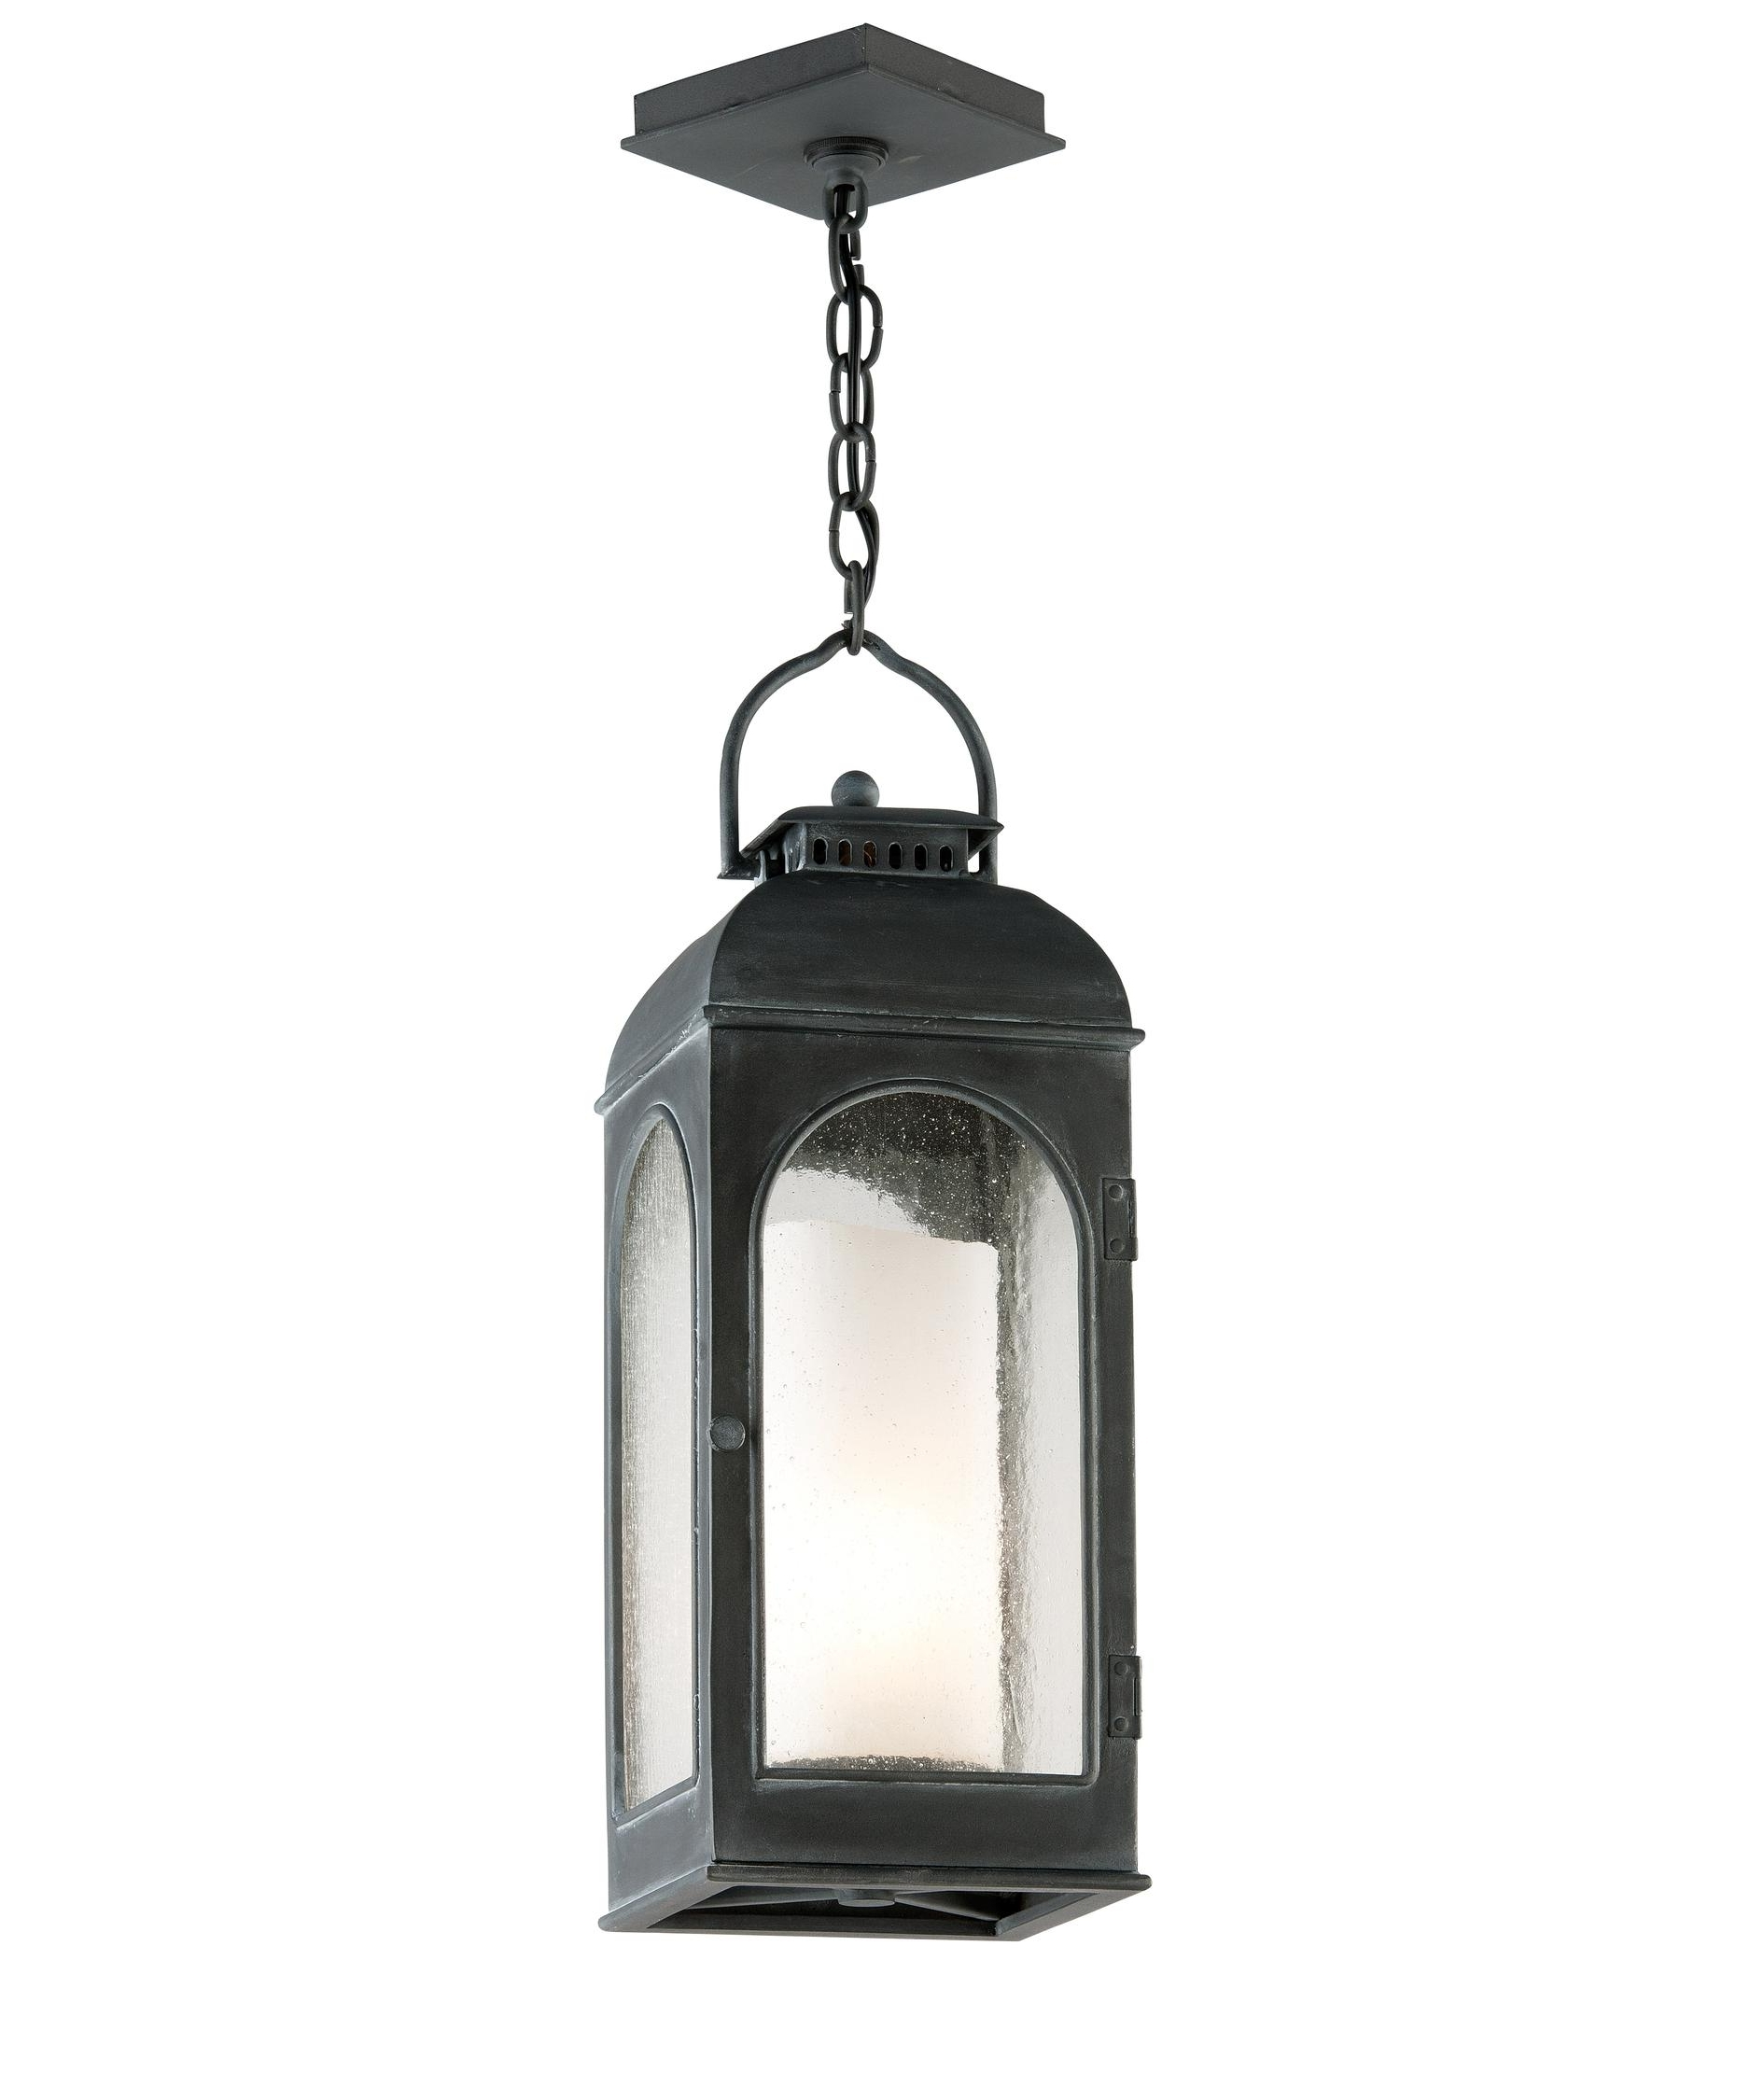 2019 Outdoor Hanging Candle Lanterns In Troy Lighting F3287 Derby 8 Inch Wide 1 Light Outdoor Hanging (View 1 of 20)